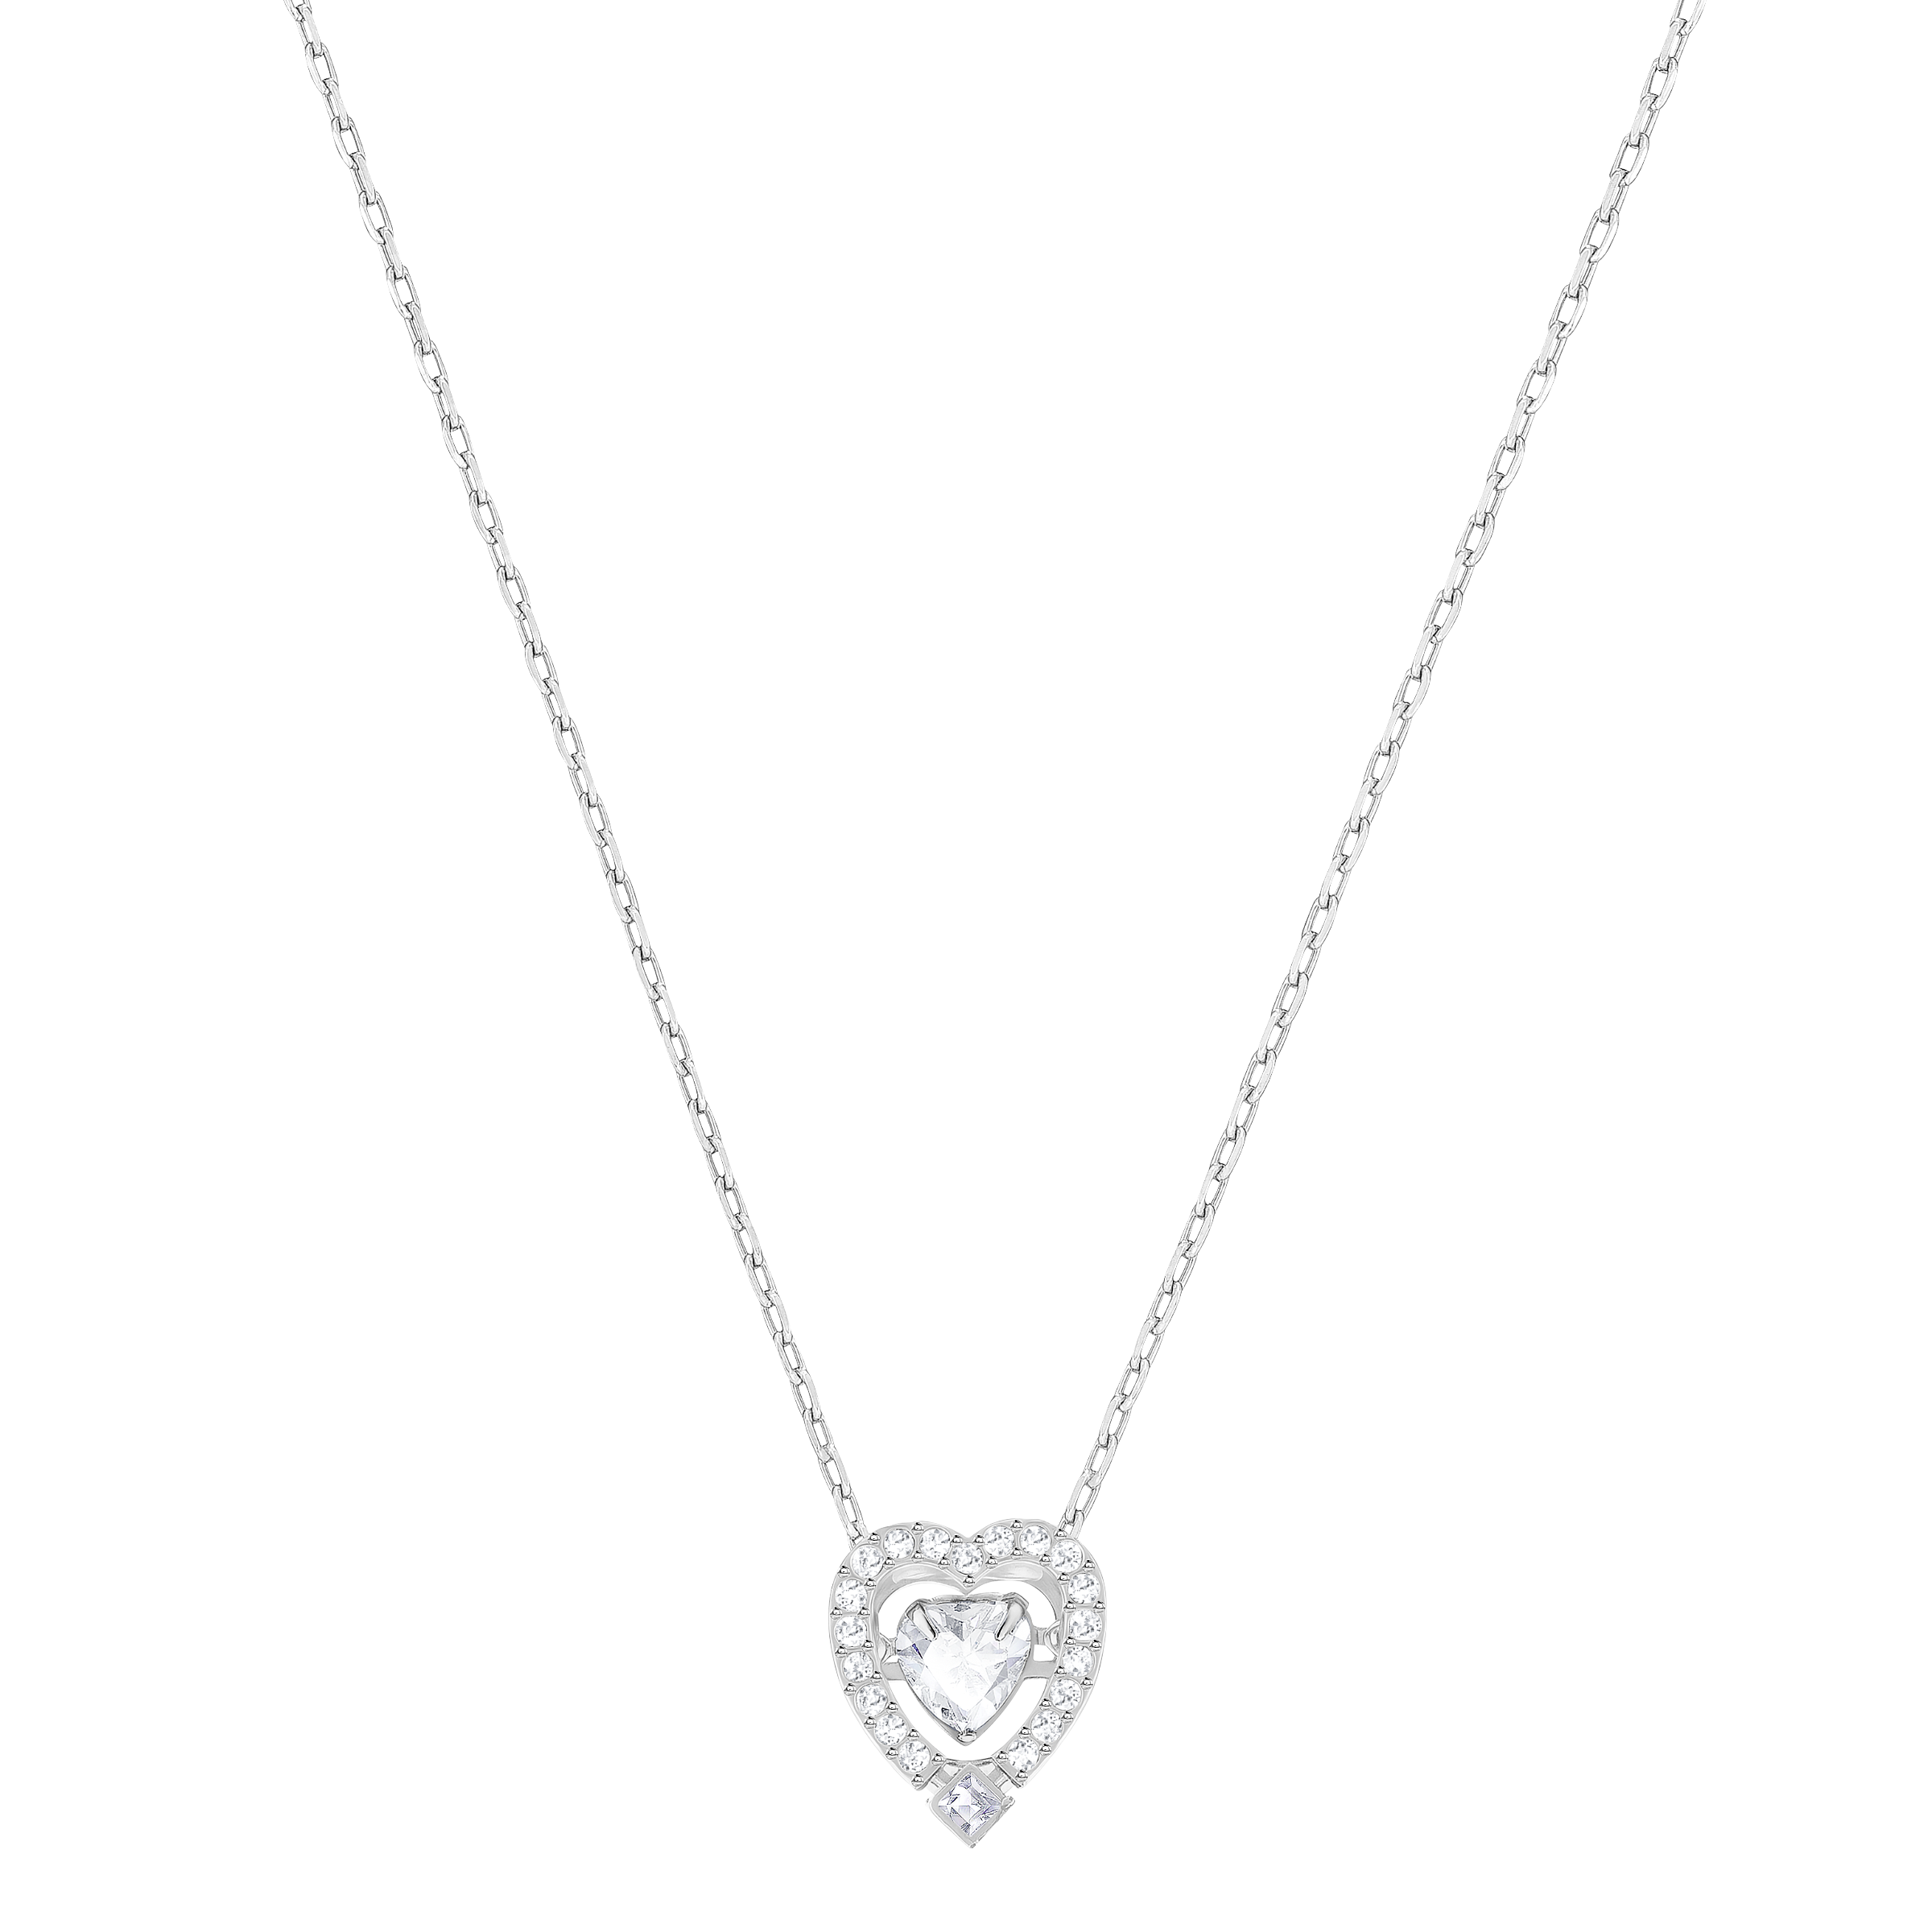 Sparkling Dance Heart Necklace, White, Rhodium Plated